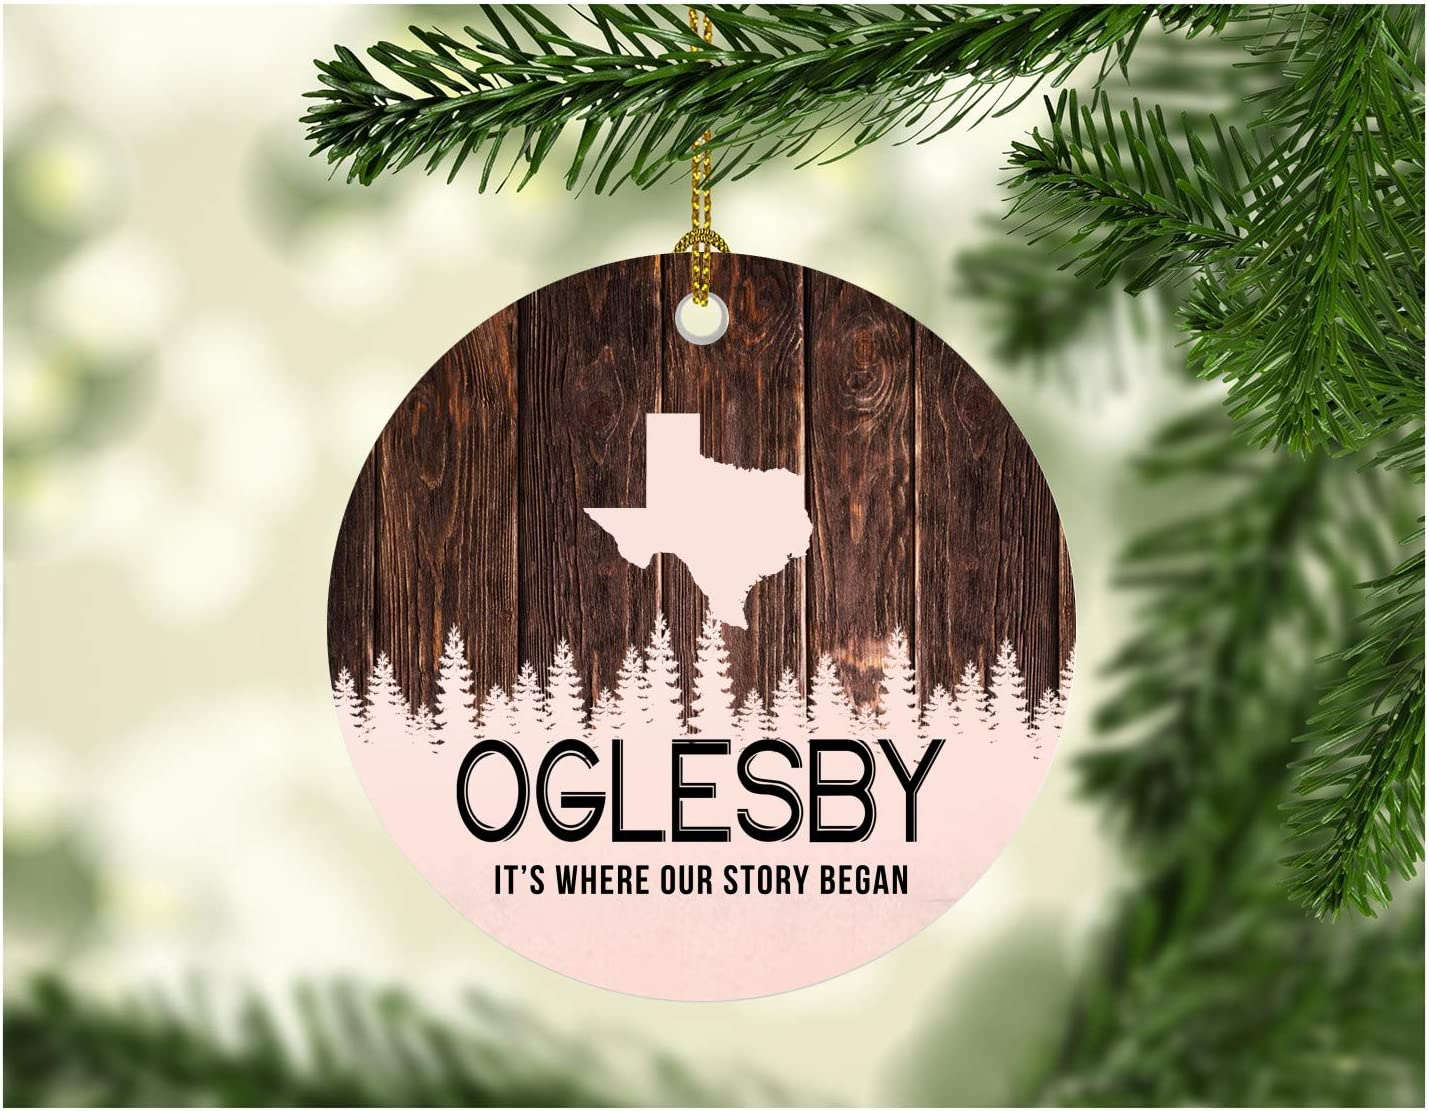 Christmas Tree Ornament 2020 Oglesby Texas It's Where Our Story Began - Merry Christmas Ornament Family Pretty Rustic Holiday Xmas Tree Decoration 3